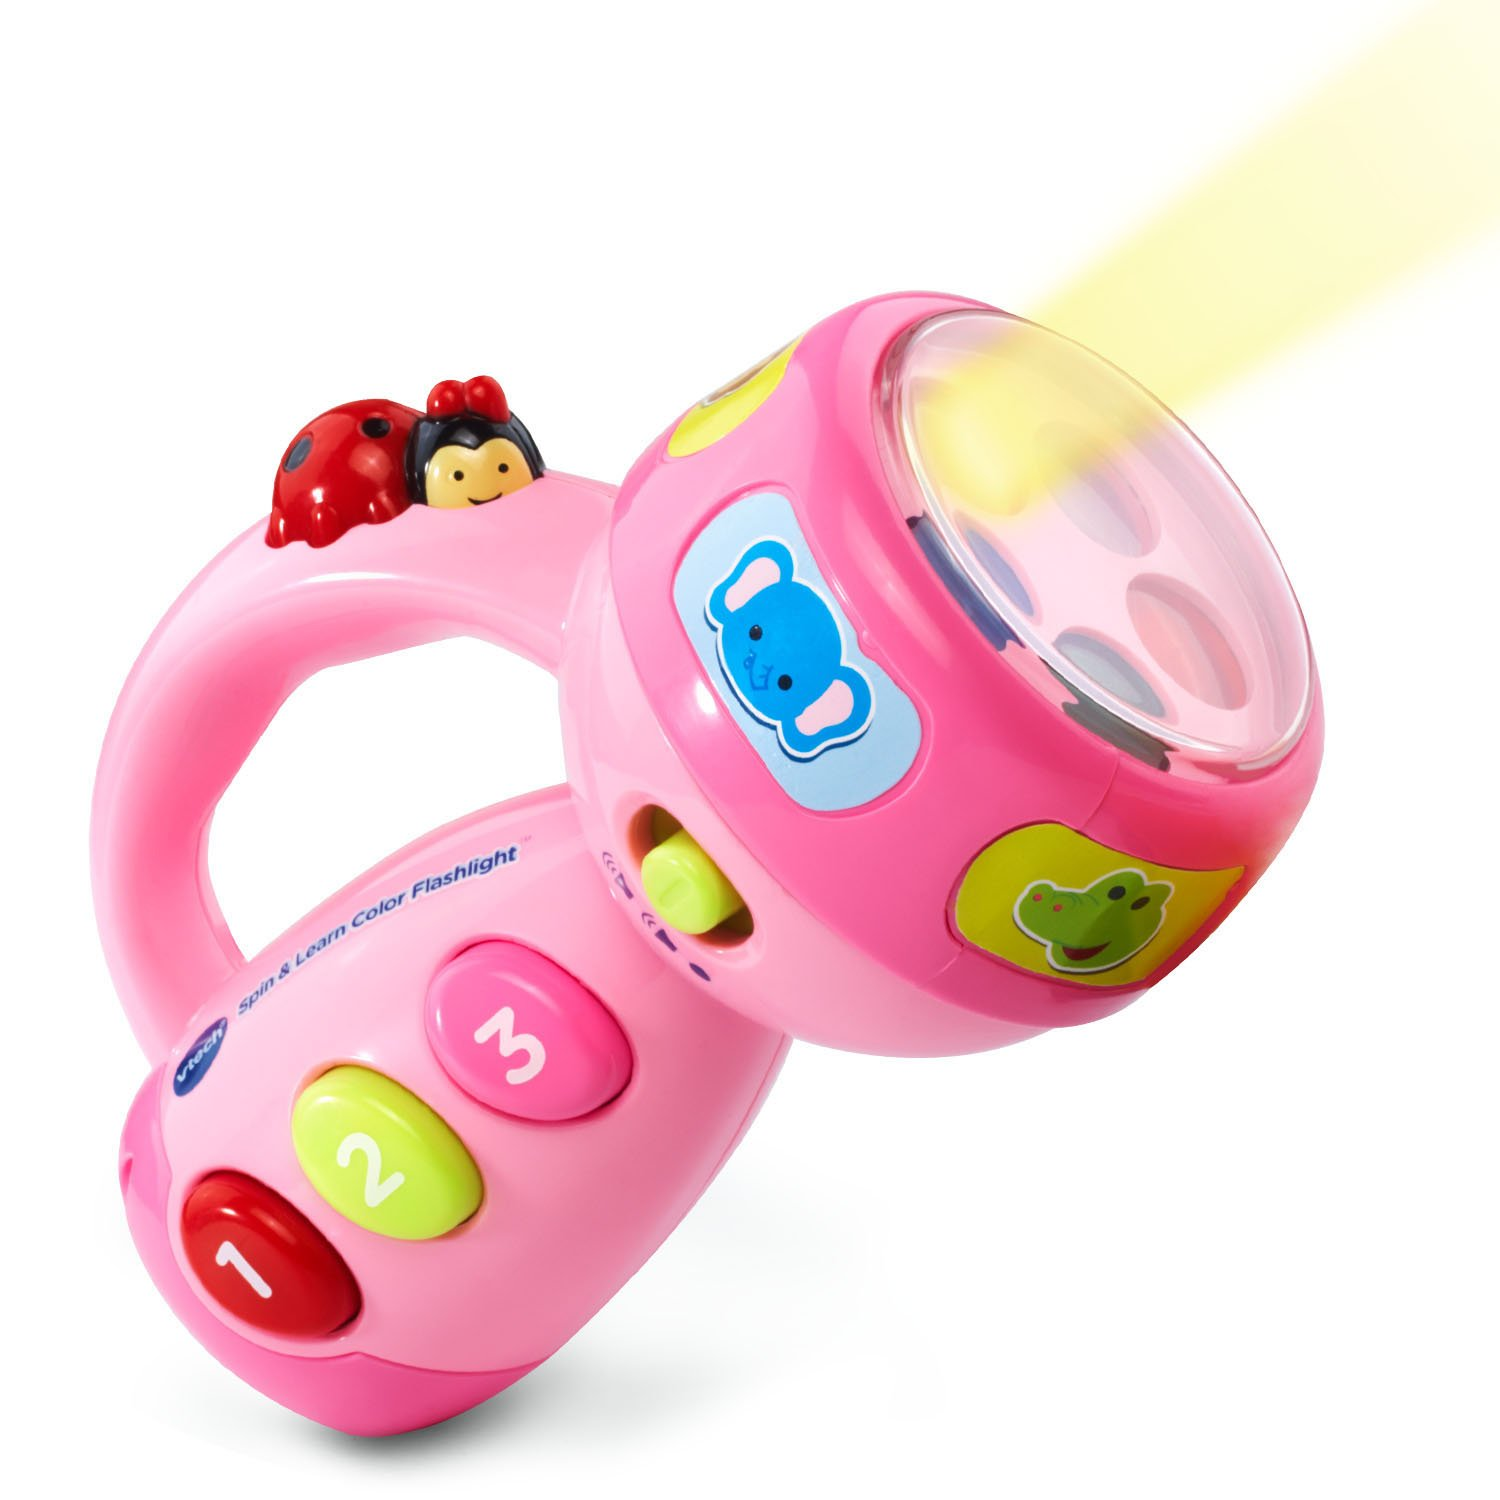 VTech Spin and Learn Color Flashlight Amazon Exclusive, Pink by VTech